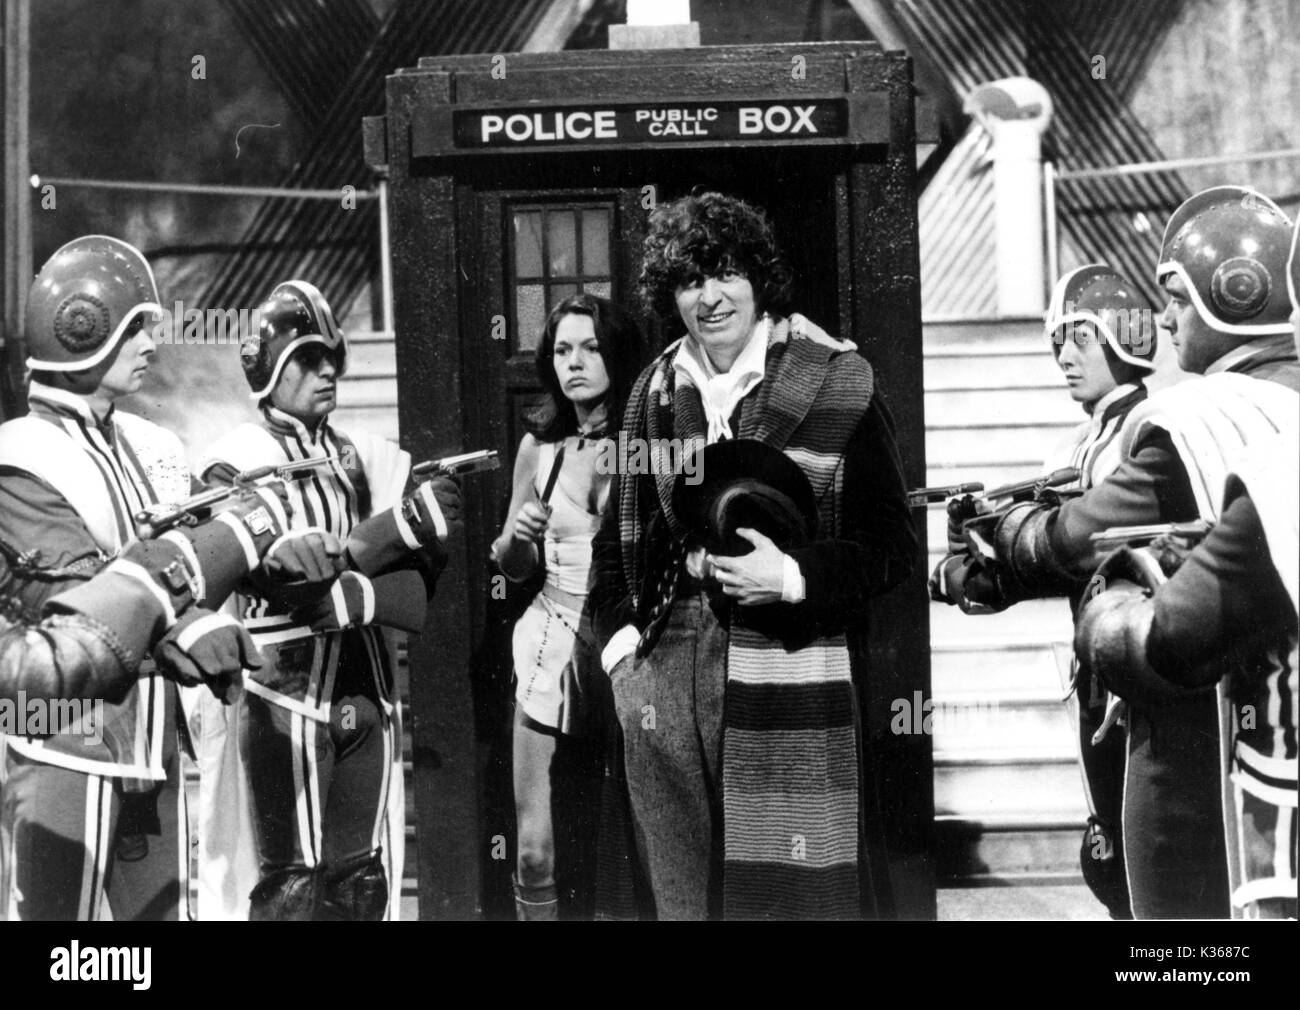 DOCTOR WHO 1977 - 1978 LOUISE JAMESON as Leela, TOM BAKER as the Doctor - Stock Image